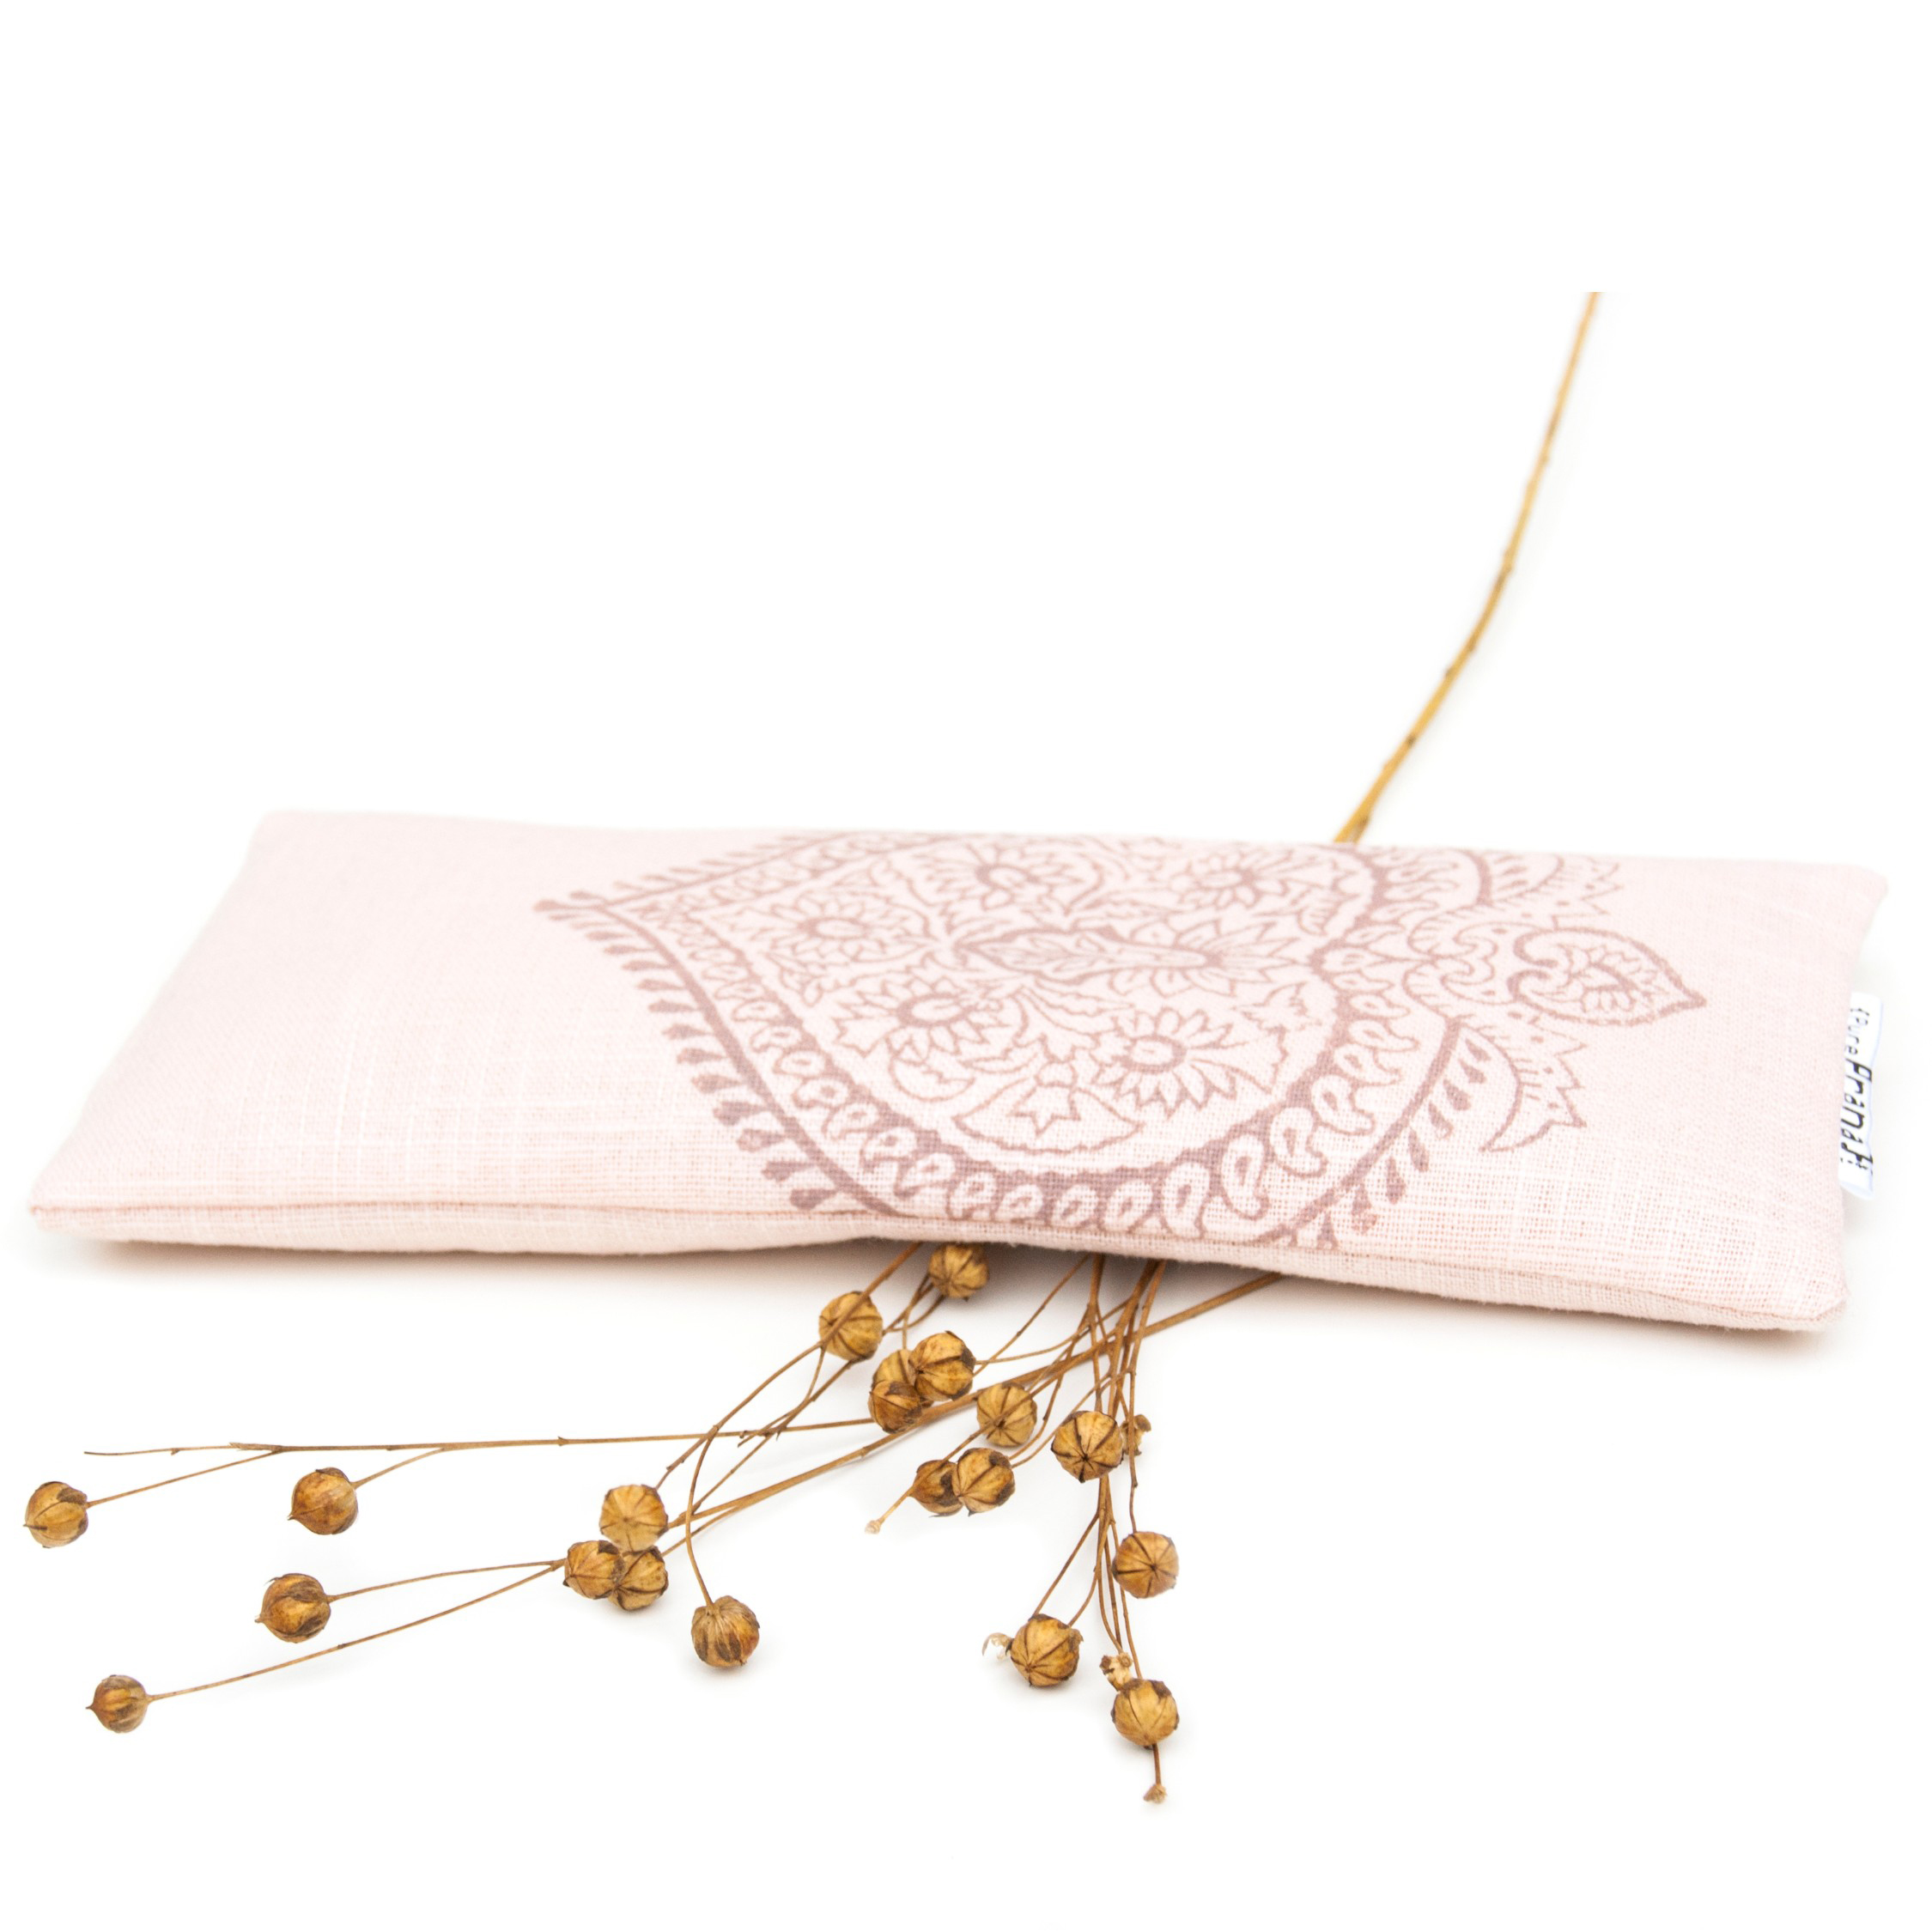 Pink eye pillow for yoga and meditation, filled with rose quartz